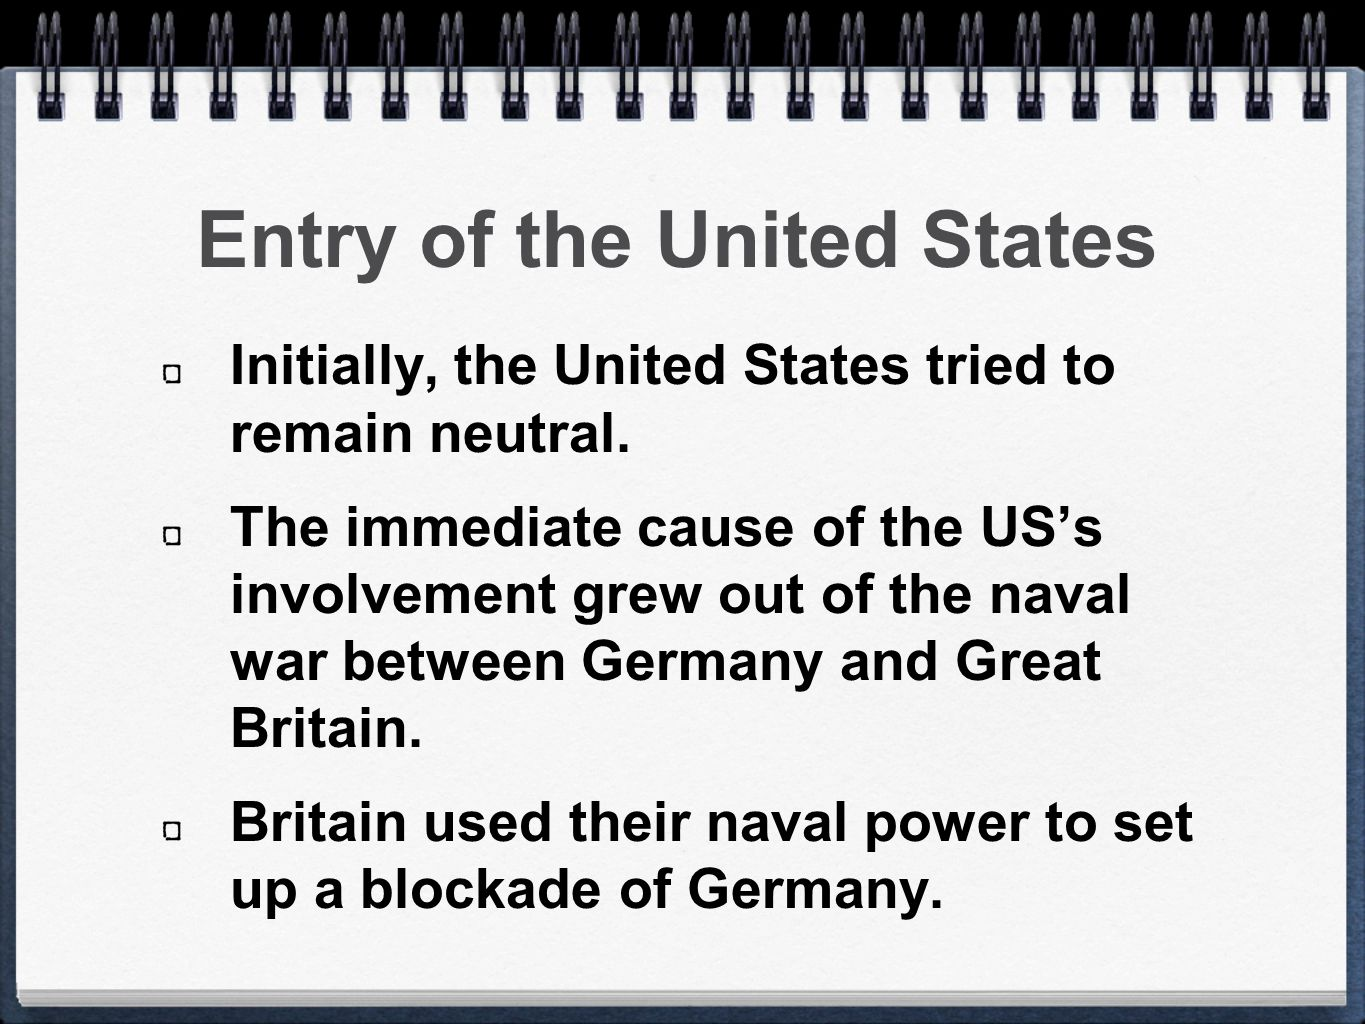 Entry of the United States